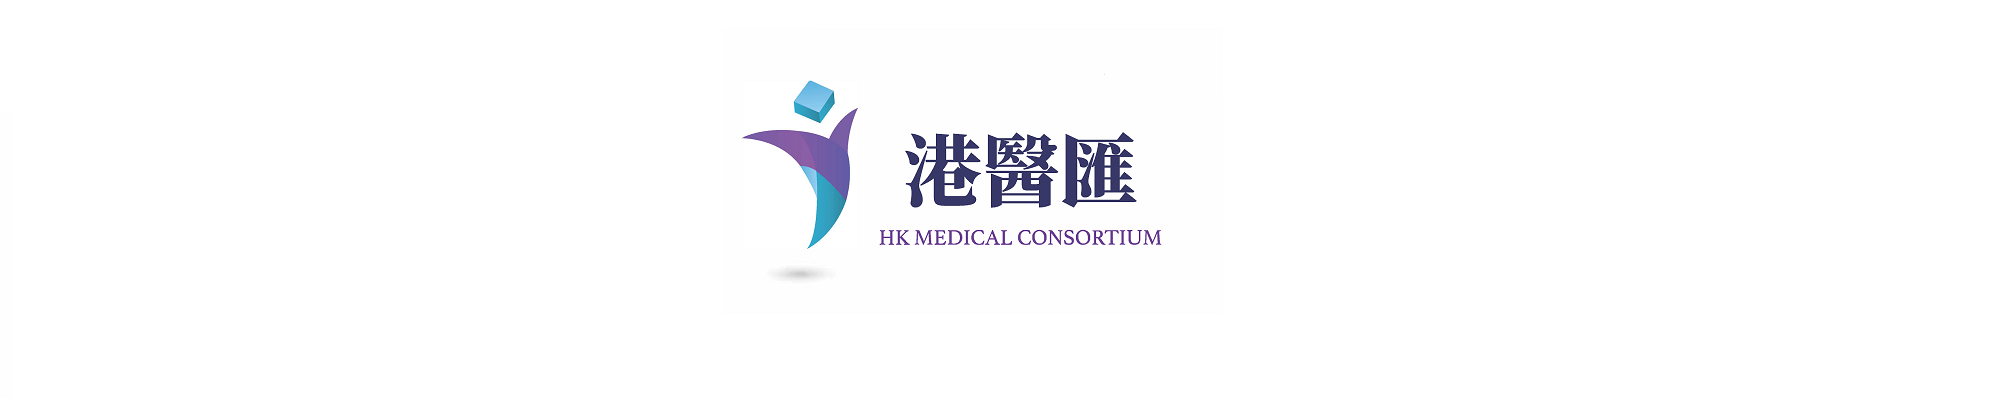 Hong Kong Medical Consortium Limited 港醫匯